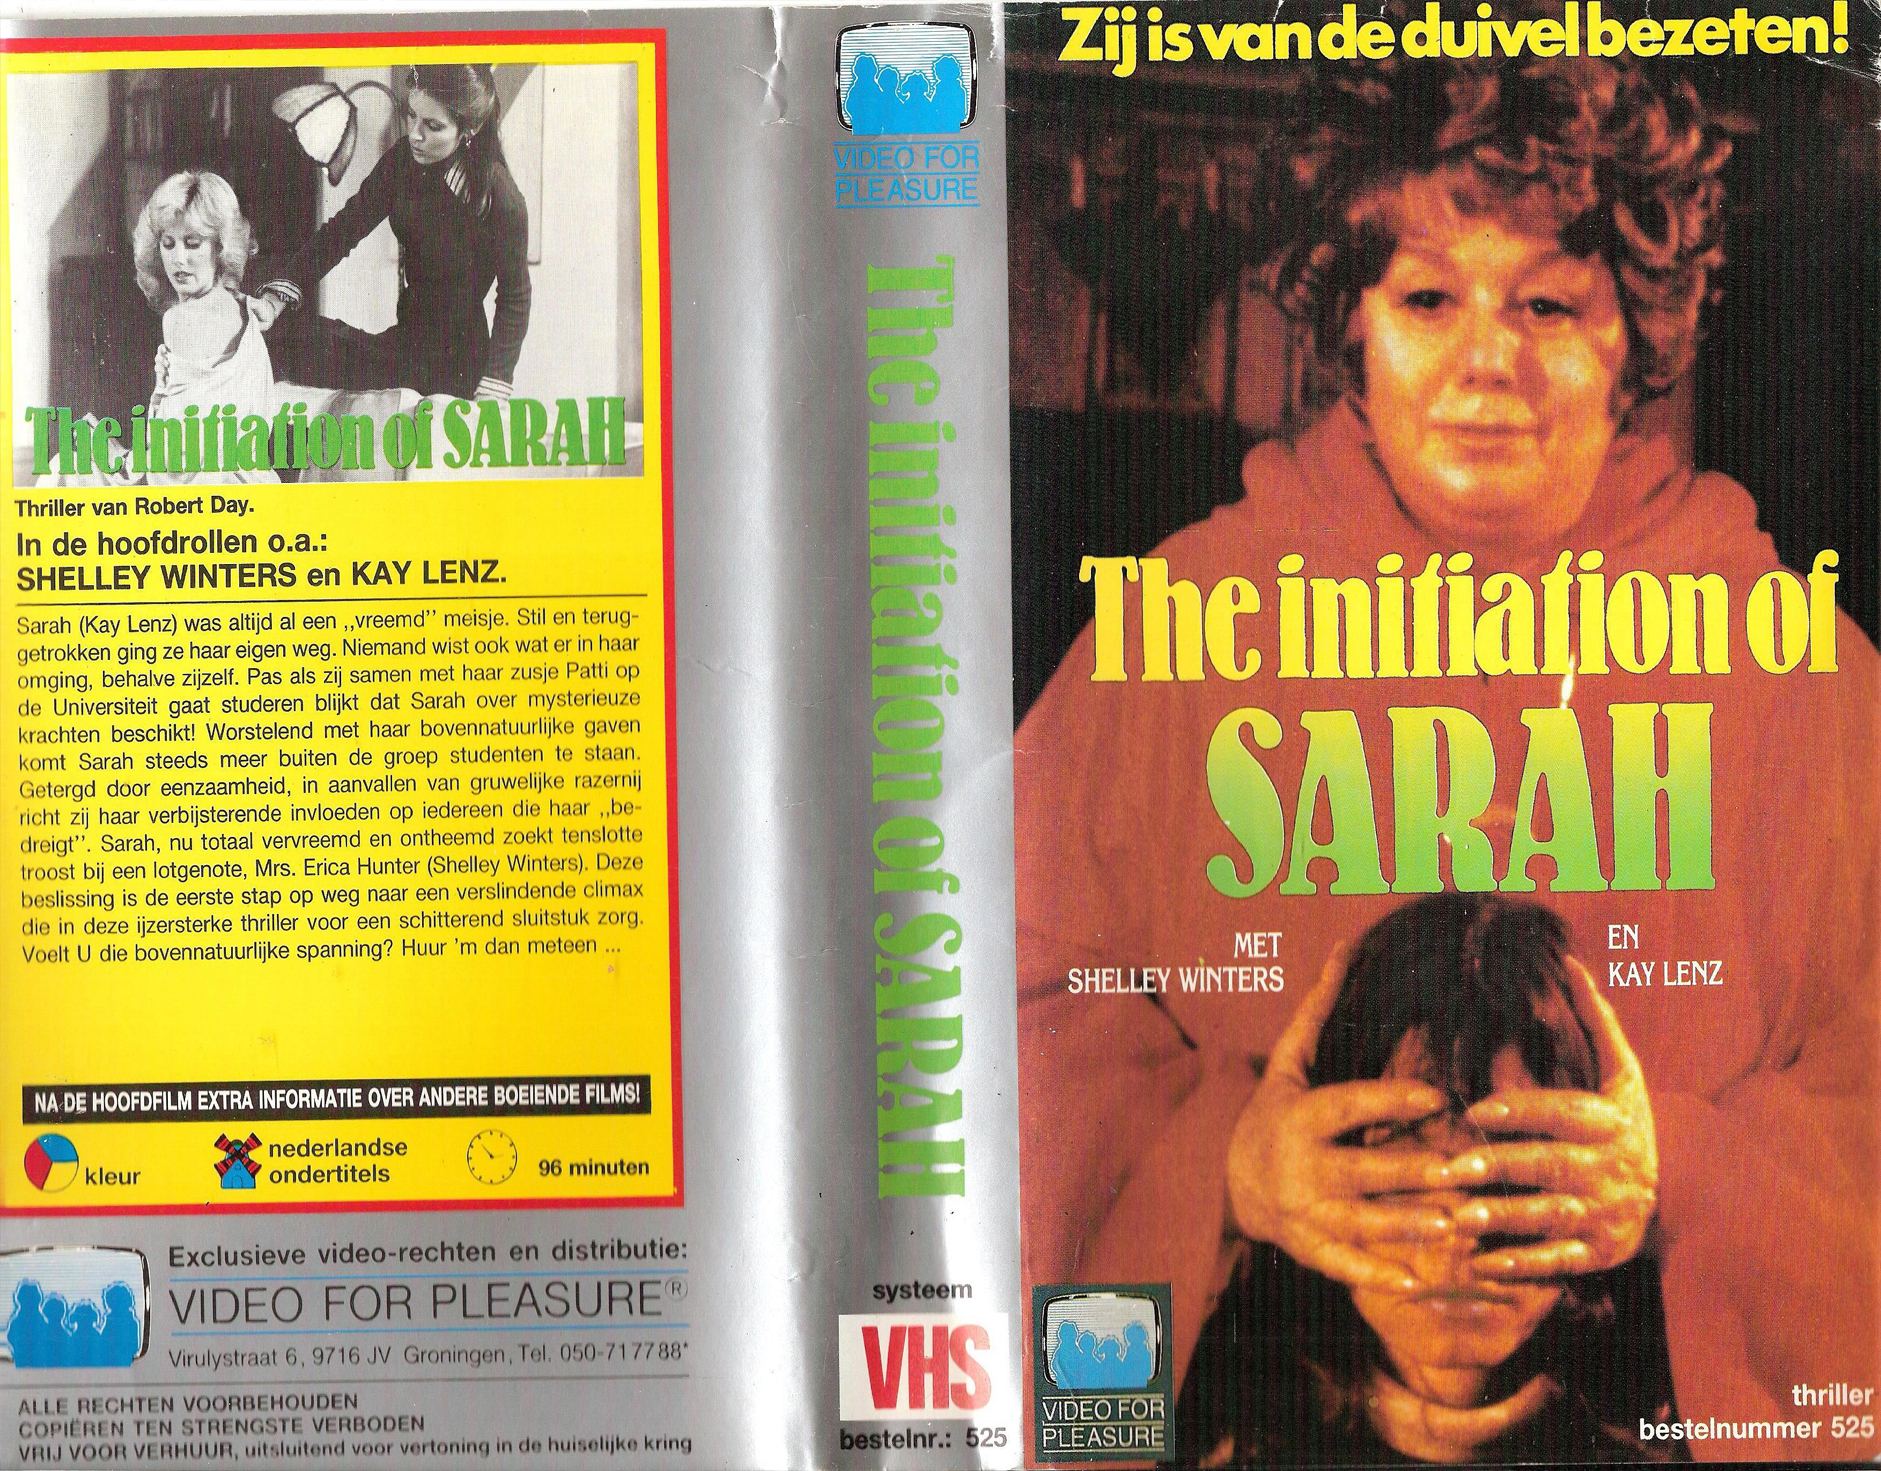 THE INITIATION OF SARAH - SUBMITTED BY VESTRON DAN